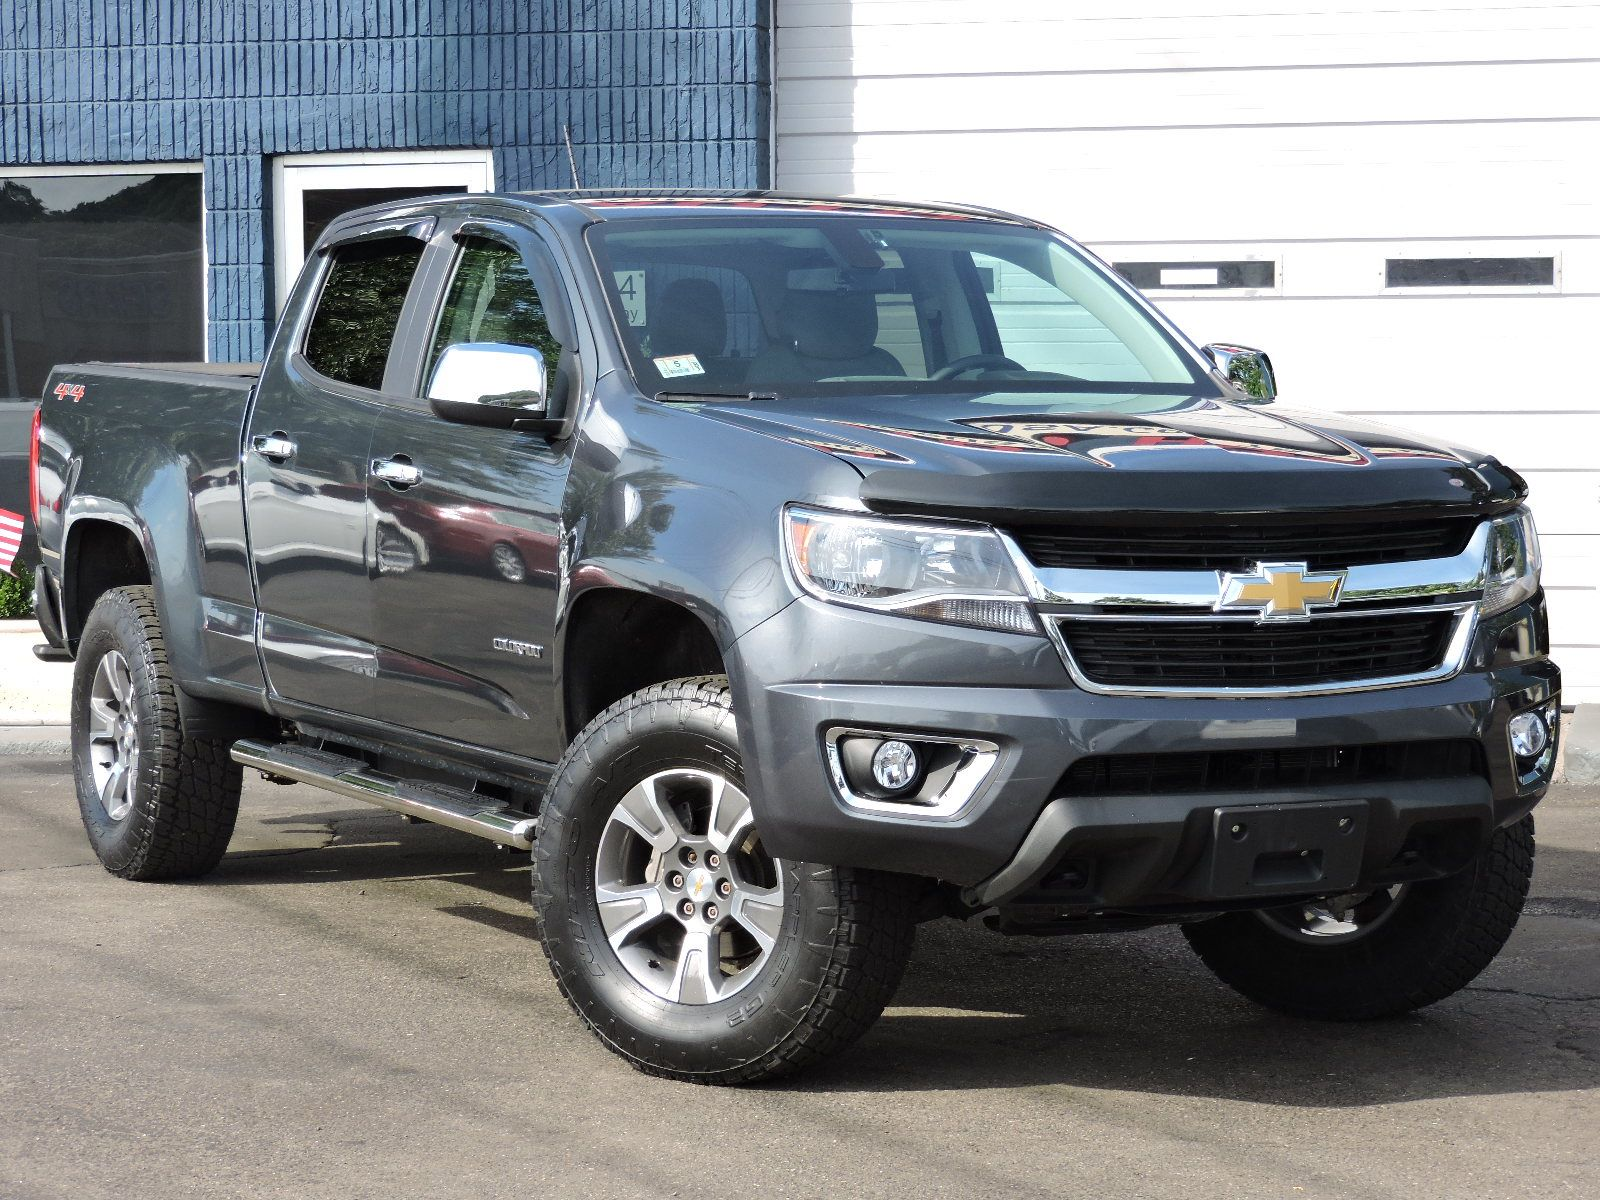 images car chevrolet crew wallpaper colorado hd wallpapers wide and cab